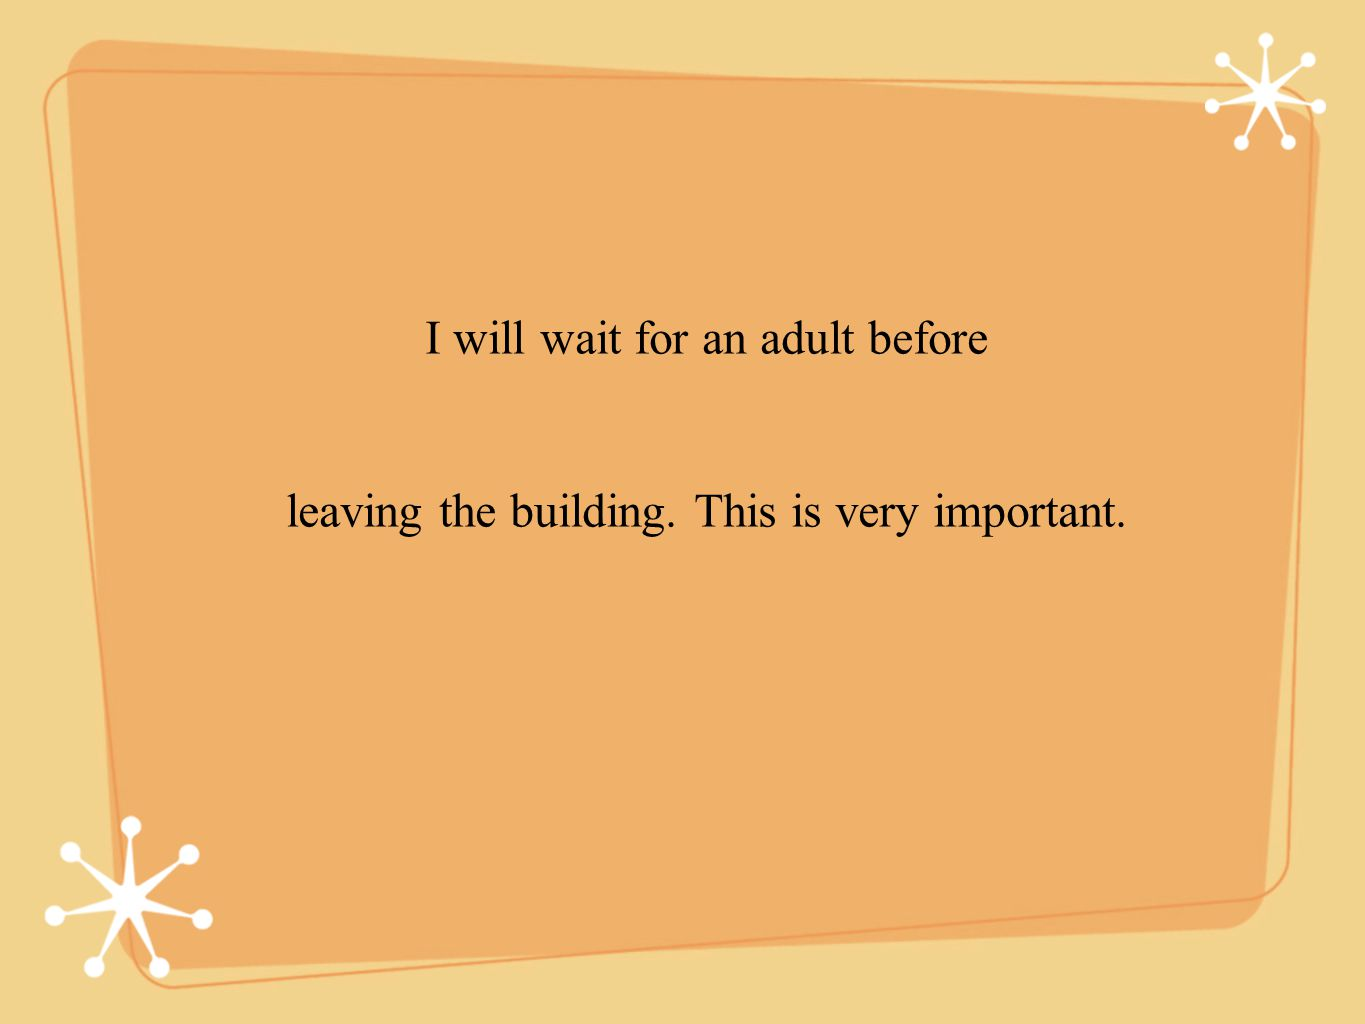 I will wait for an adult before leaving the building. This is very important.